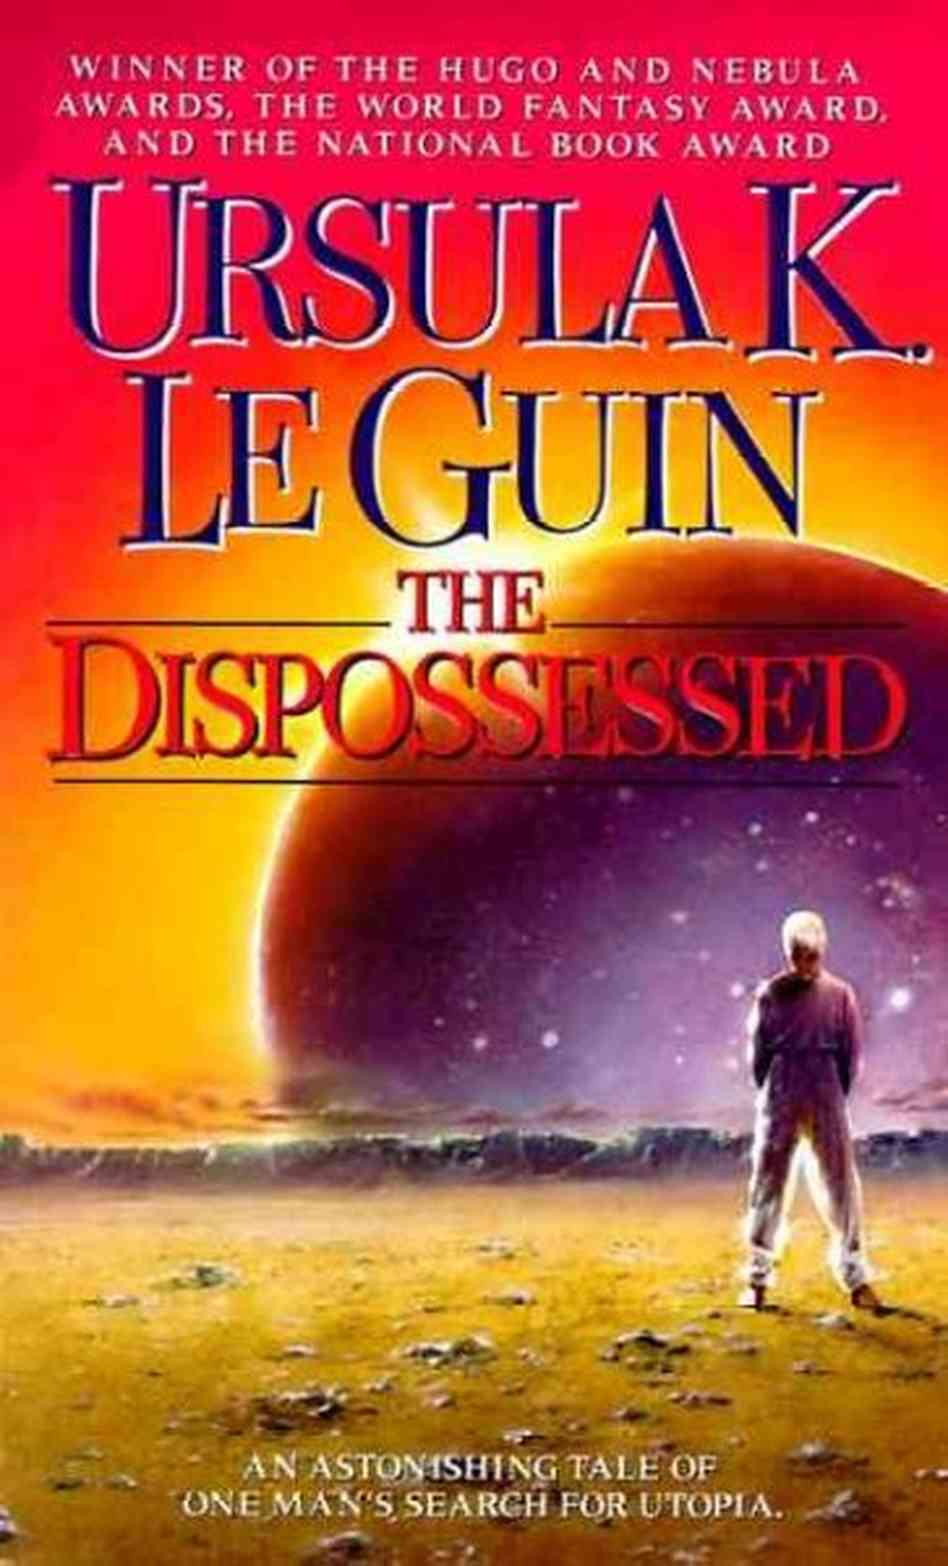 """Book cover for """"The Dispossessed"""" by Ursula K. Le Guin. The image shows a lone figure (right) standing on a barren stretch of land, looking towards a rising or setting planet in the background, which has a glint of light peeking around its edge, presumably the sun behind it. At the top, text reads, """"Winner of the Hugo and Nebula Awards, The World Fantasy Award, and the National Book Award."""" At the bottom of the cover white text reads, """"An astonishing tale of one man's search for utopia."""""""